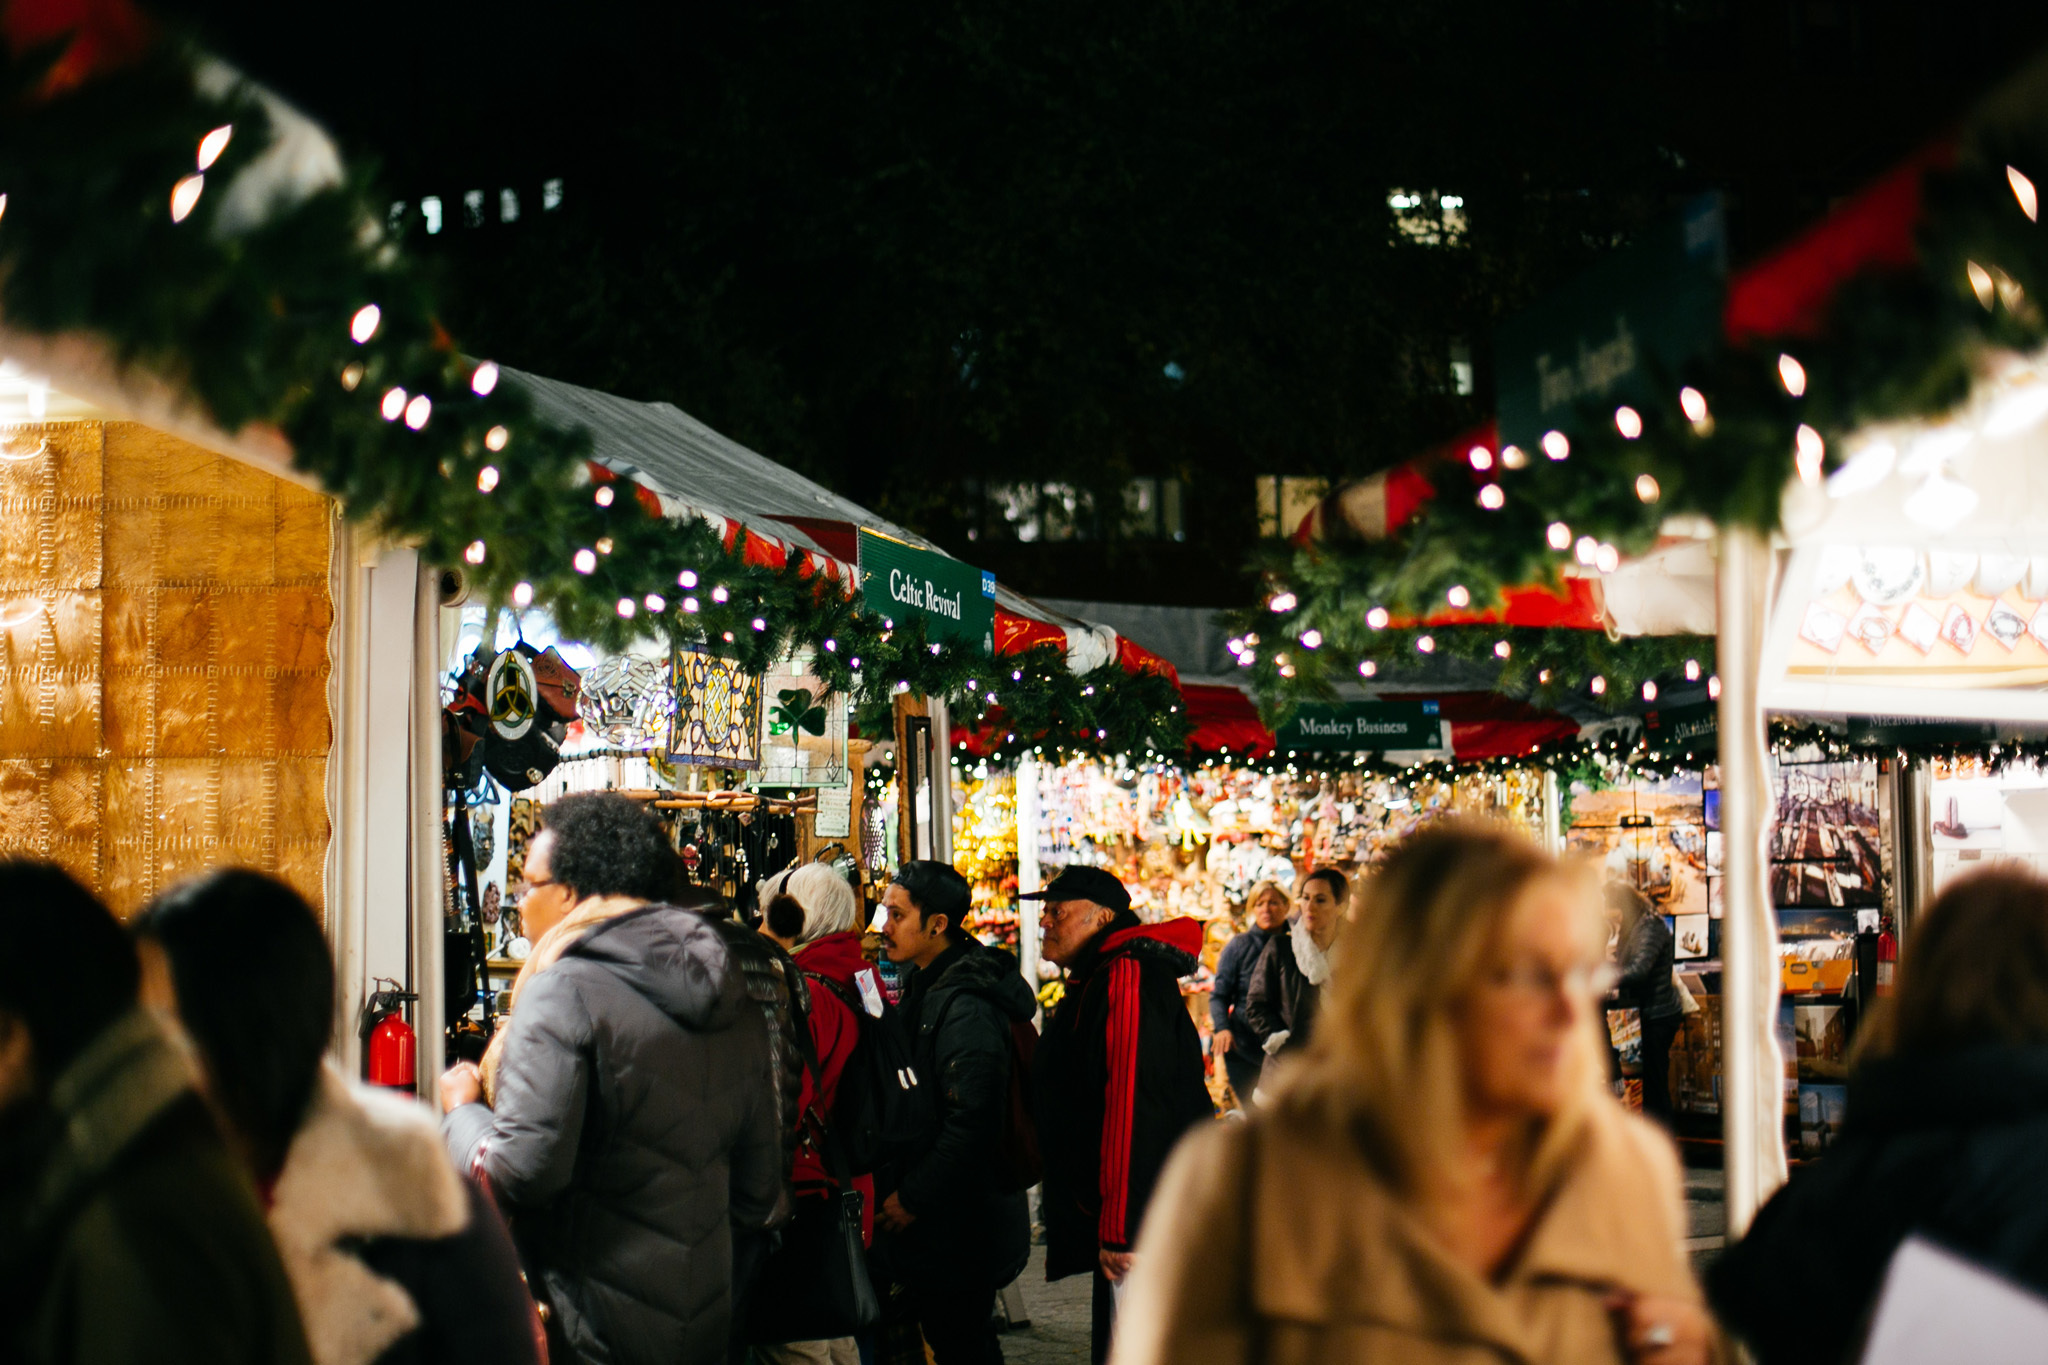 Best Christmas things to do in NYC including holiday attractions